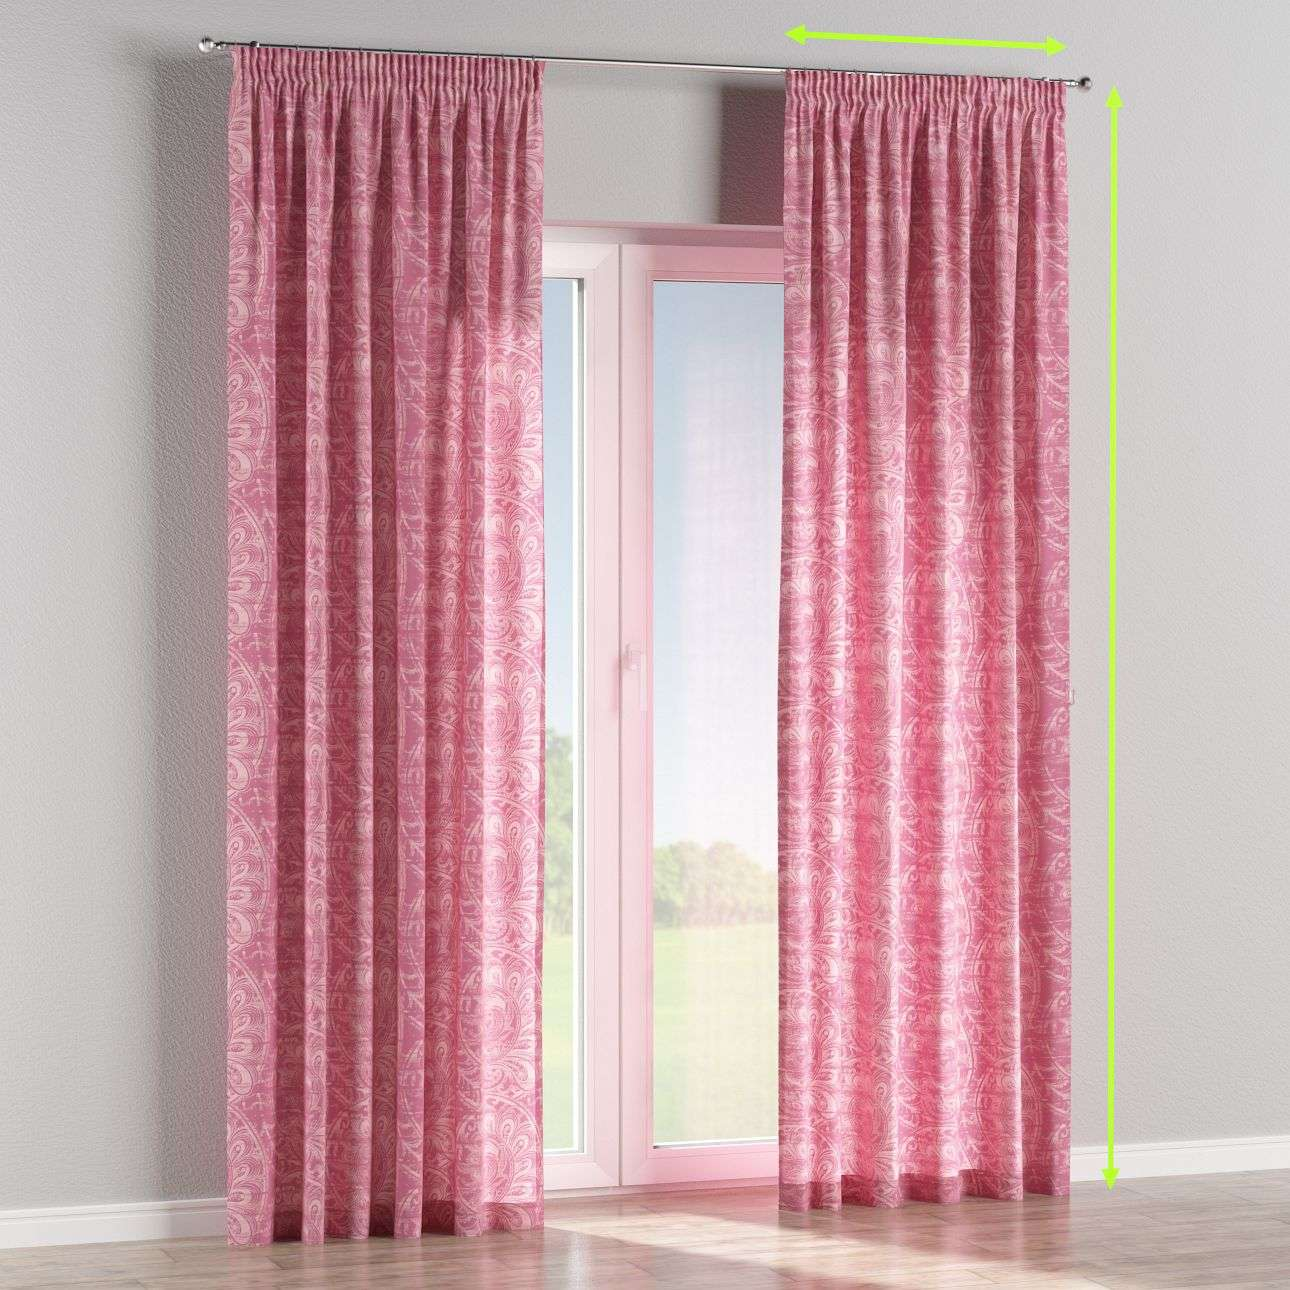 Pencil pleat curtains in collection Mirella, fabric: 143-07